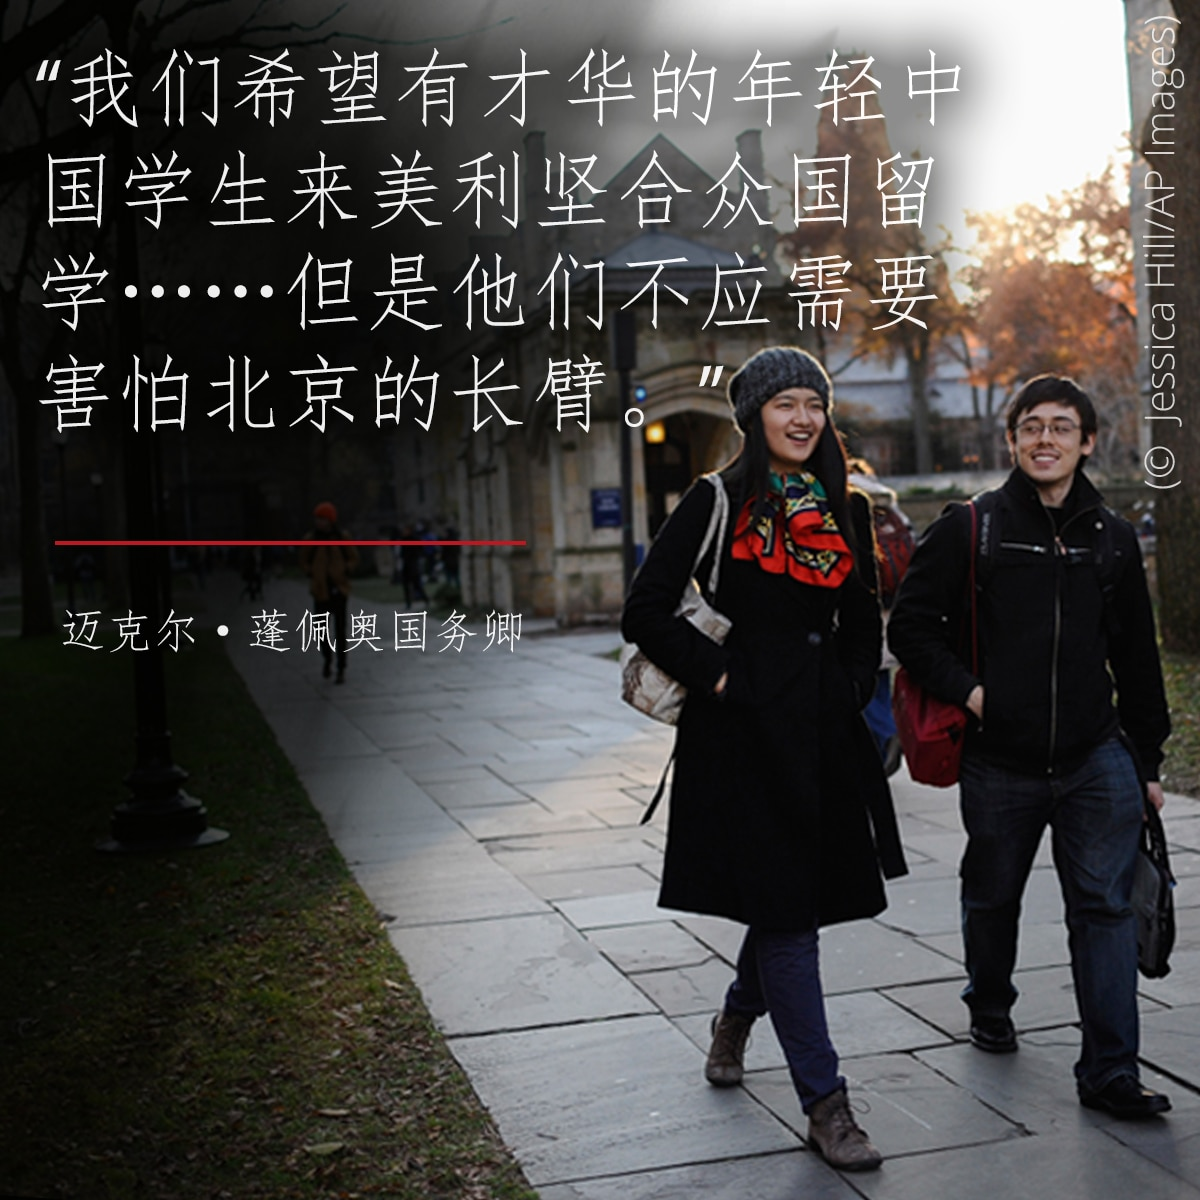 Photo of two people walking, Pompeo quote about academic freedom for Chinese students in U.S. (© Jessica Hill/AP Images)